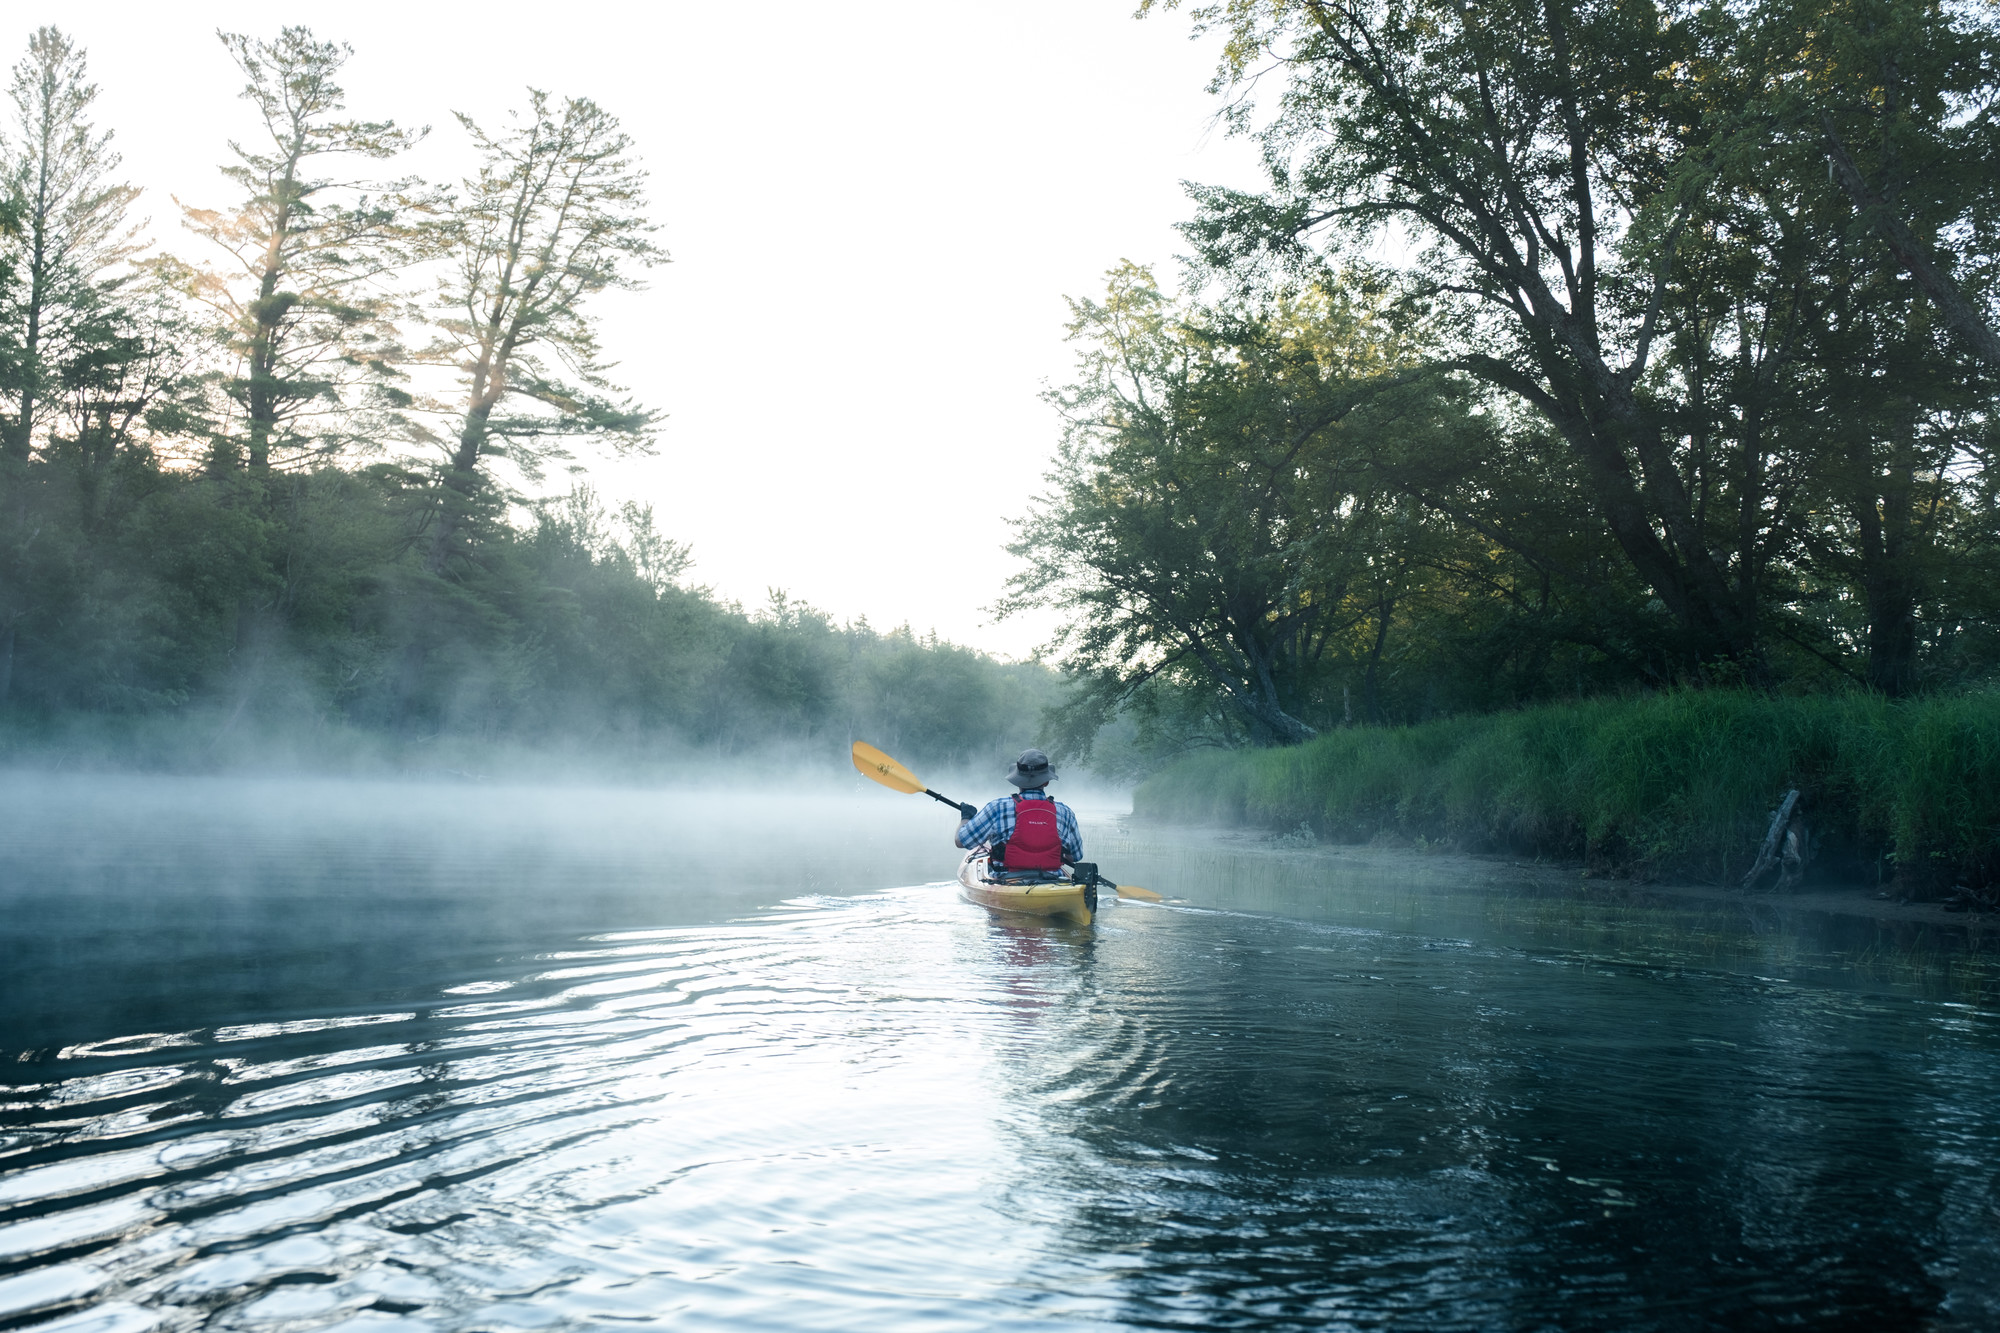 A solo kayaker paddling down a river in the morning fog.